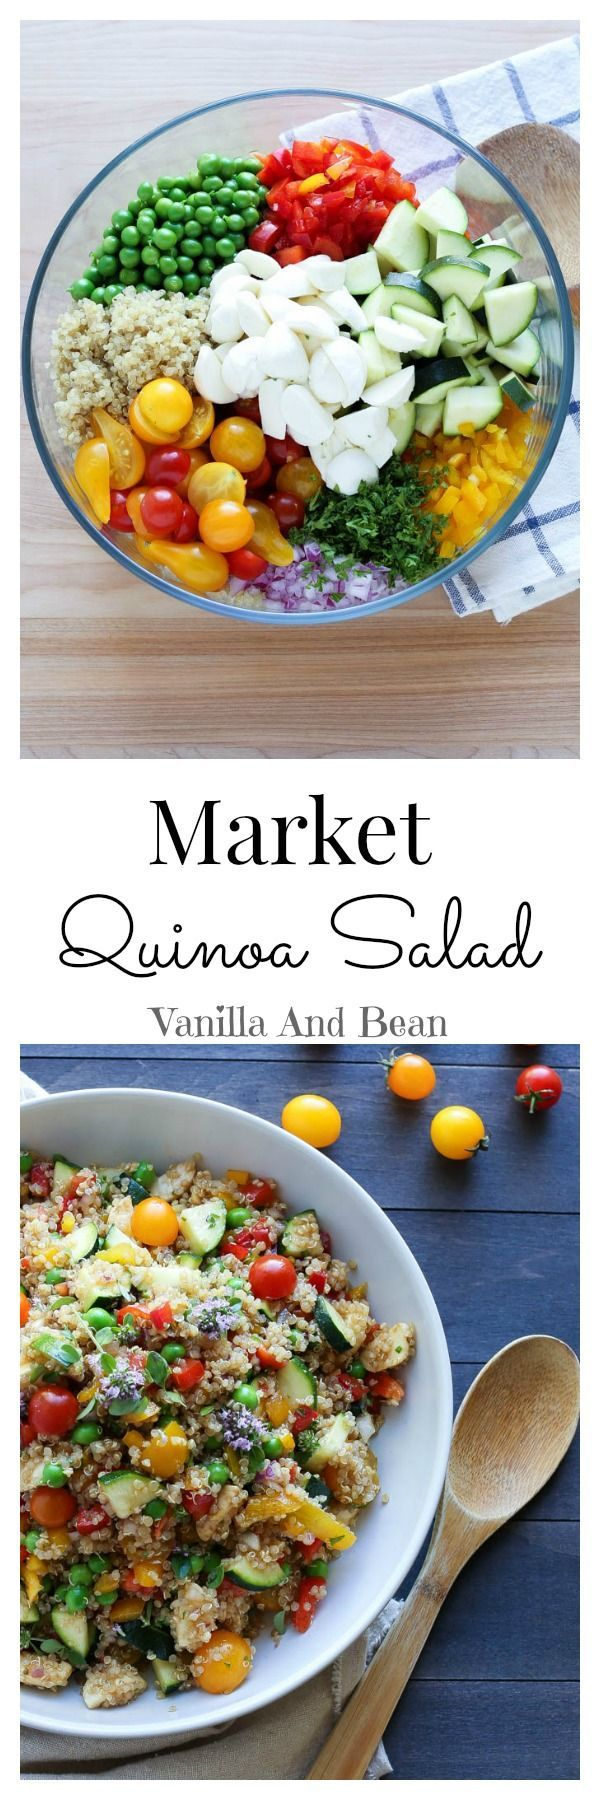 Summertime goodness in a bowl! Hearty, and delicious, a perfect addition to a picnic, potluck or any time!  | Vanilla And Bean